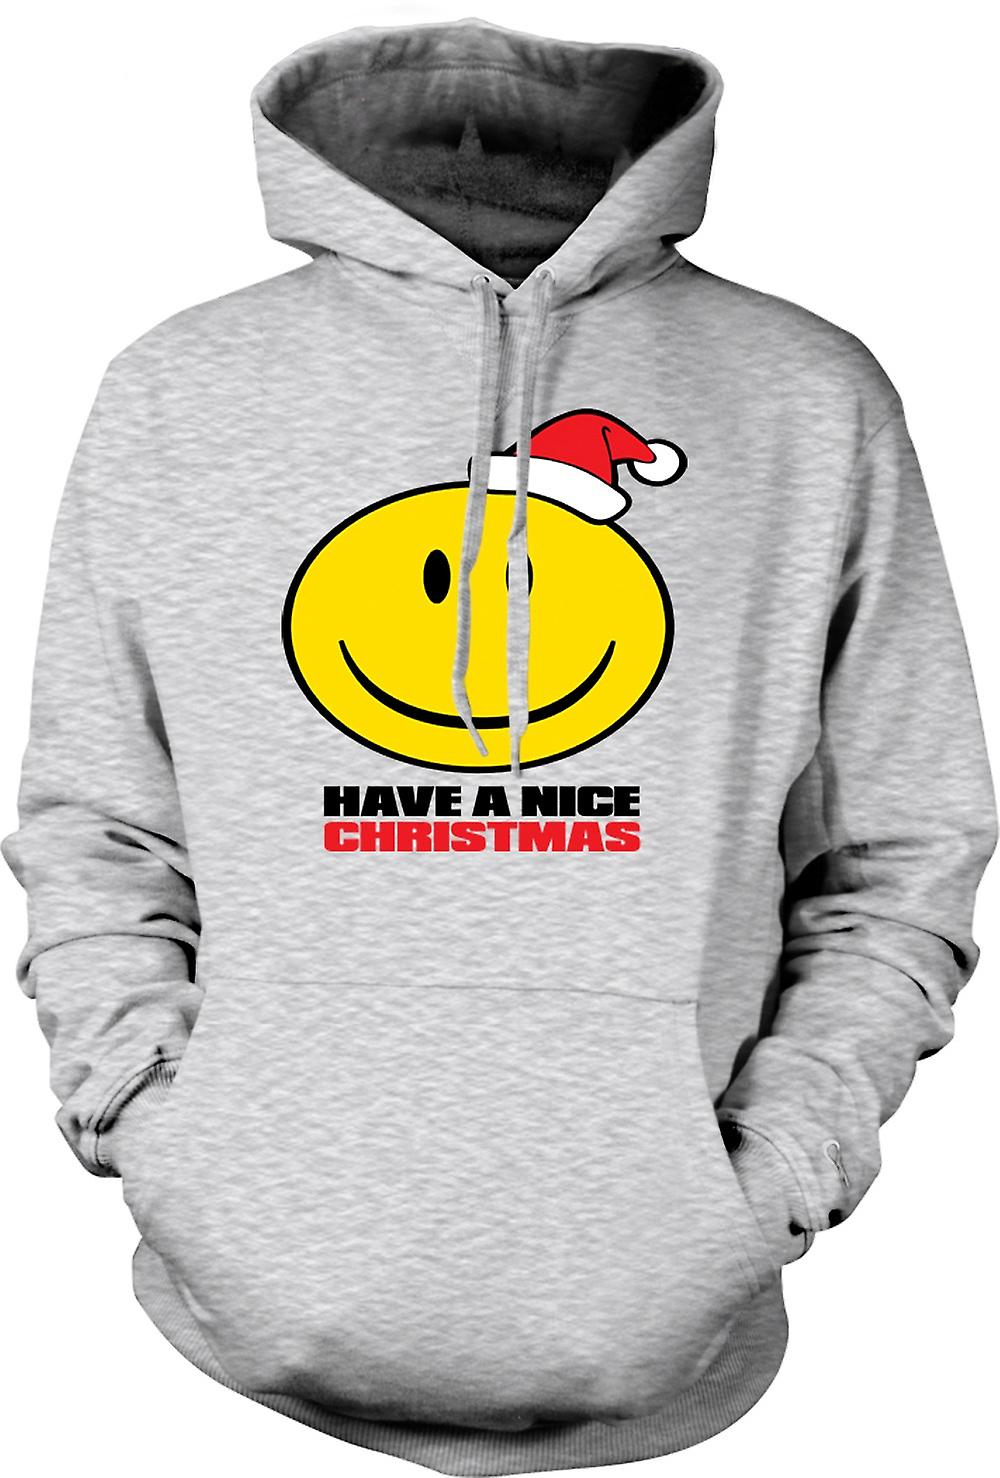 Mens Hoodie - Smiley Face, en trevlig jul